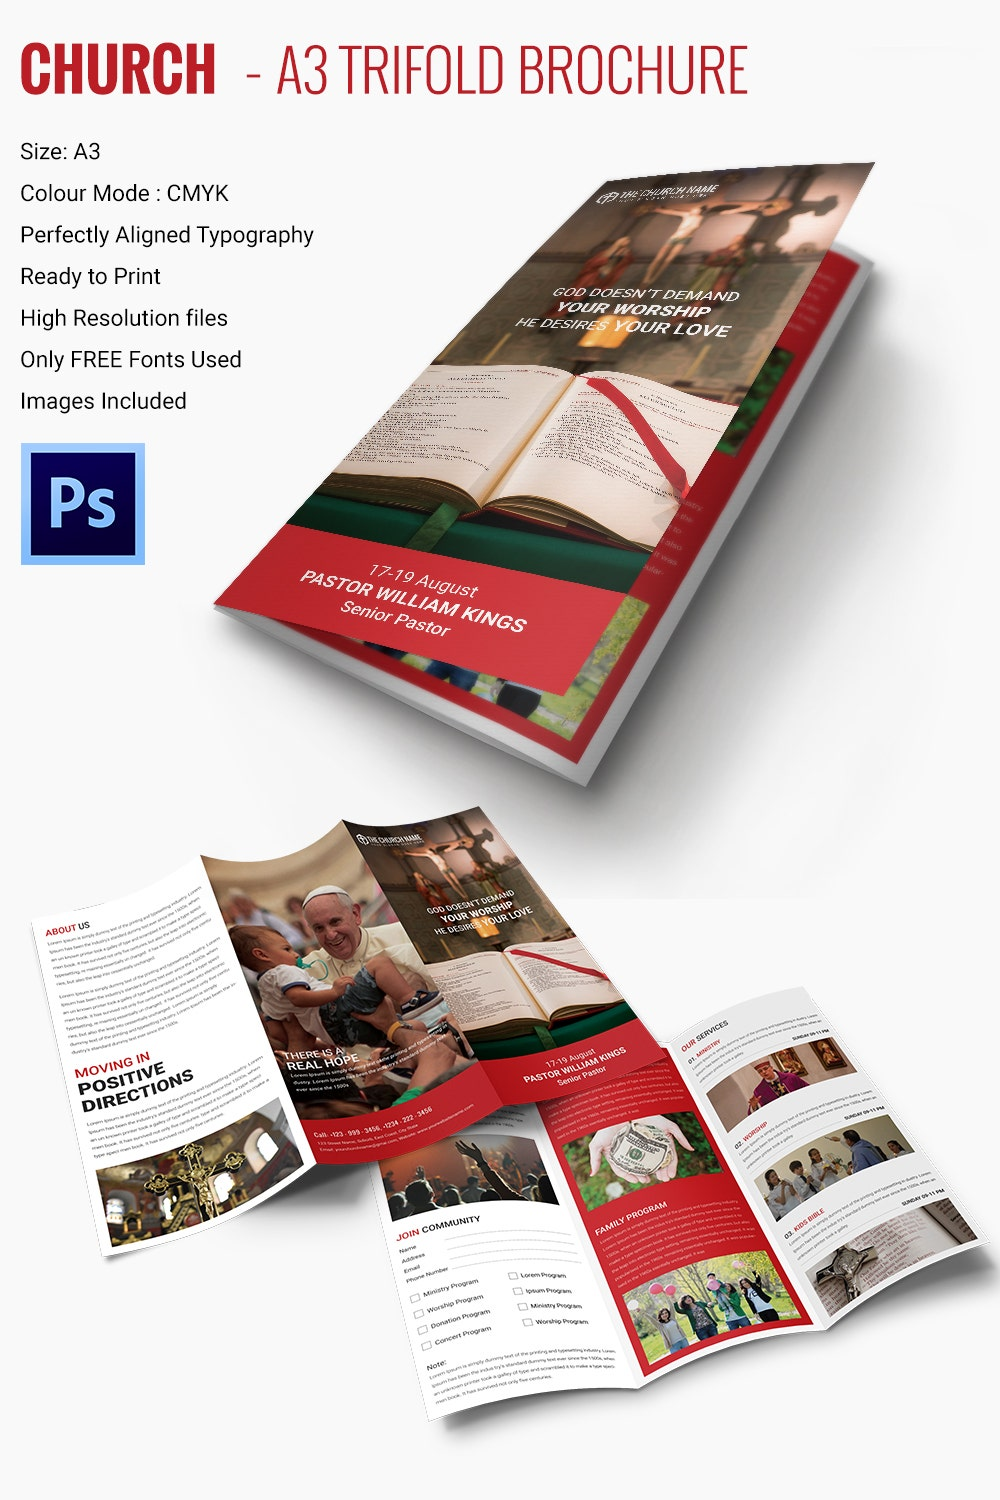 A3 Trifold Church Brochure Template  Free Tri Fold Brochure Templates Microsoft Word